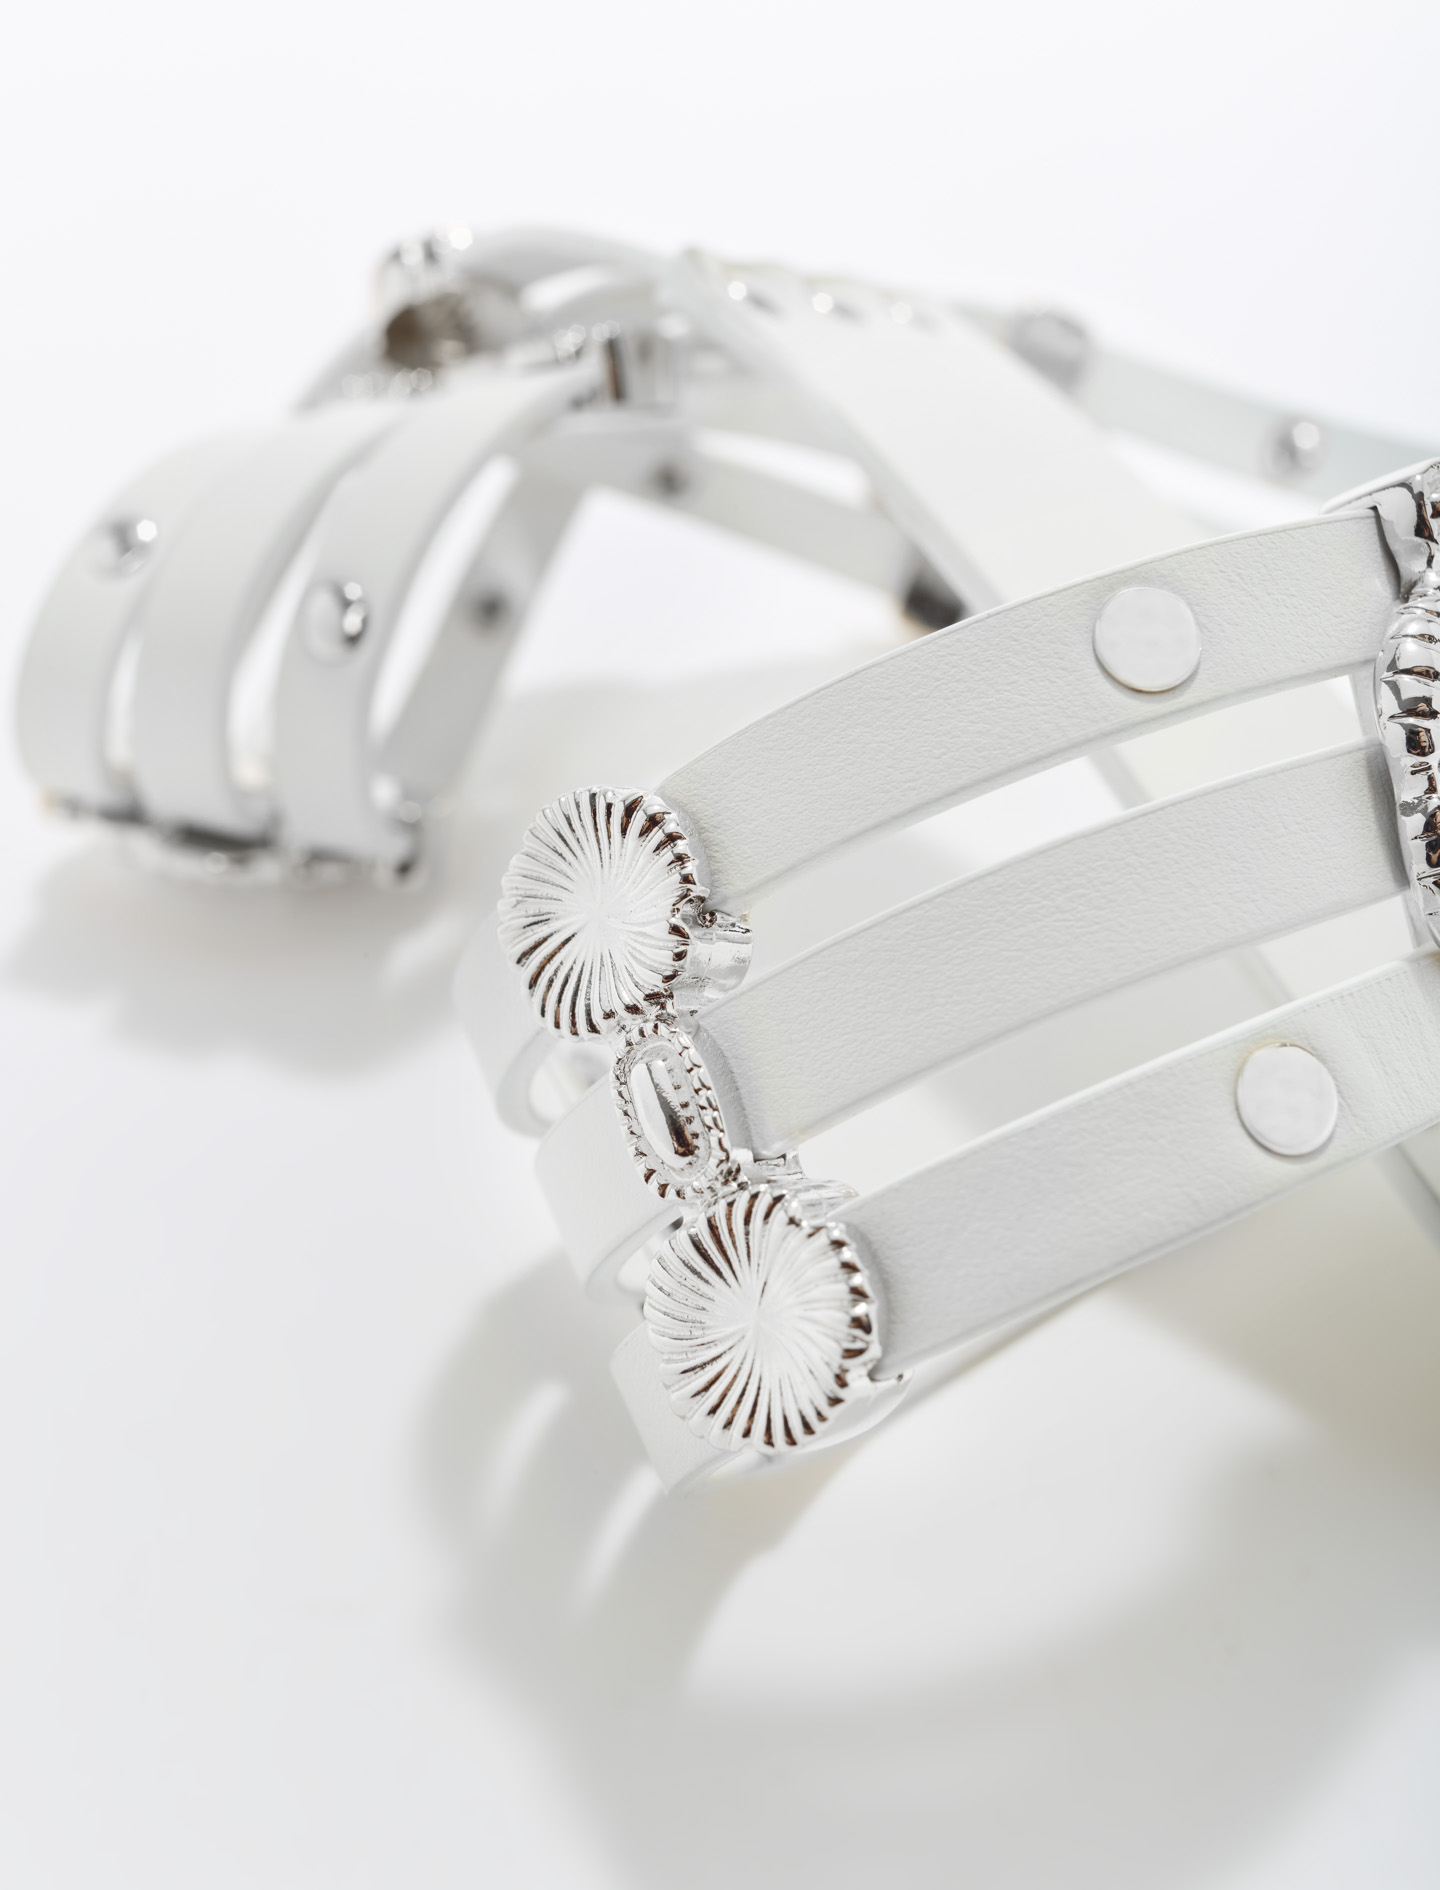 Leather belt with flower details - White